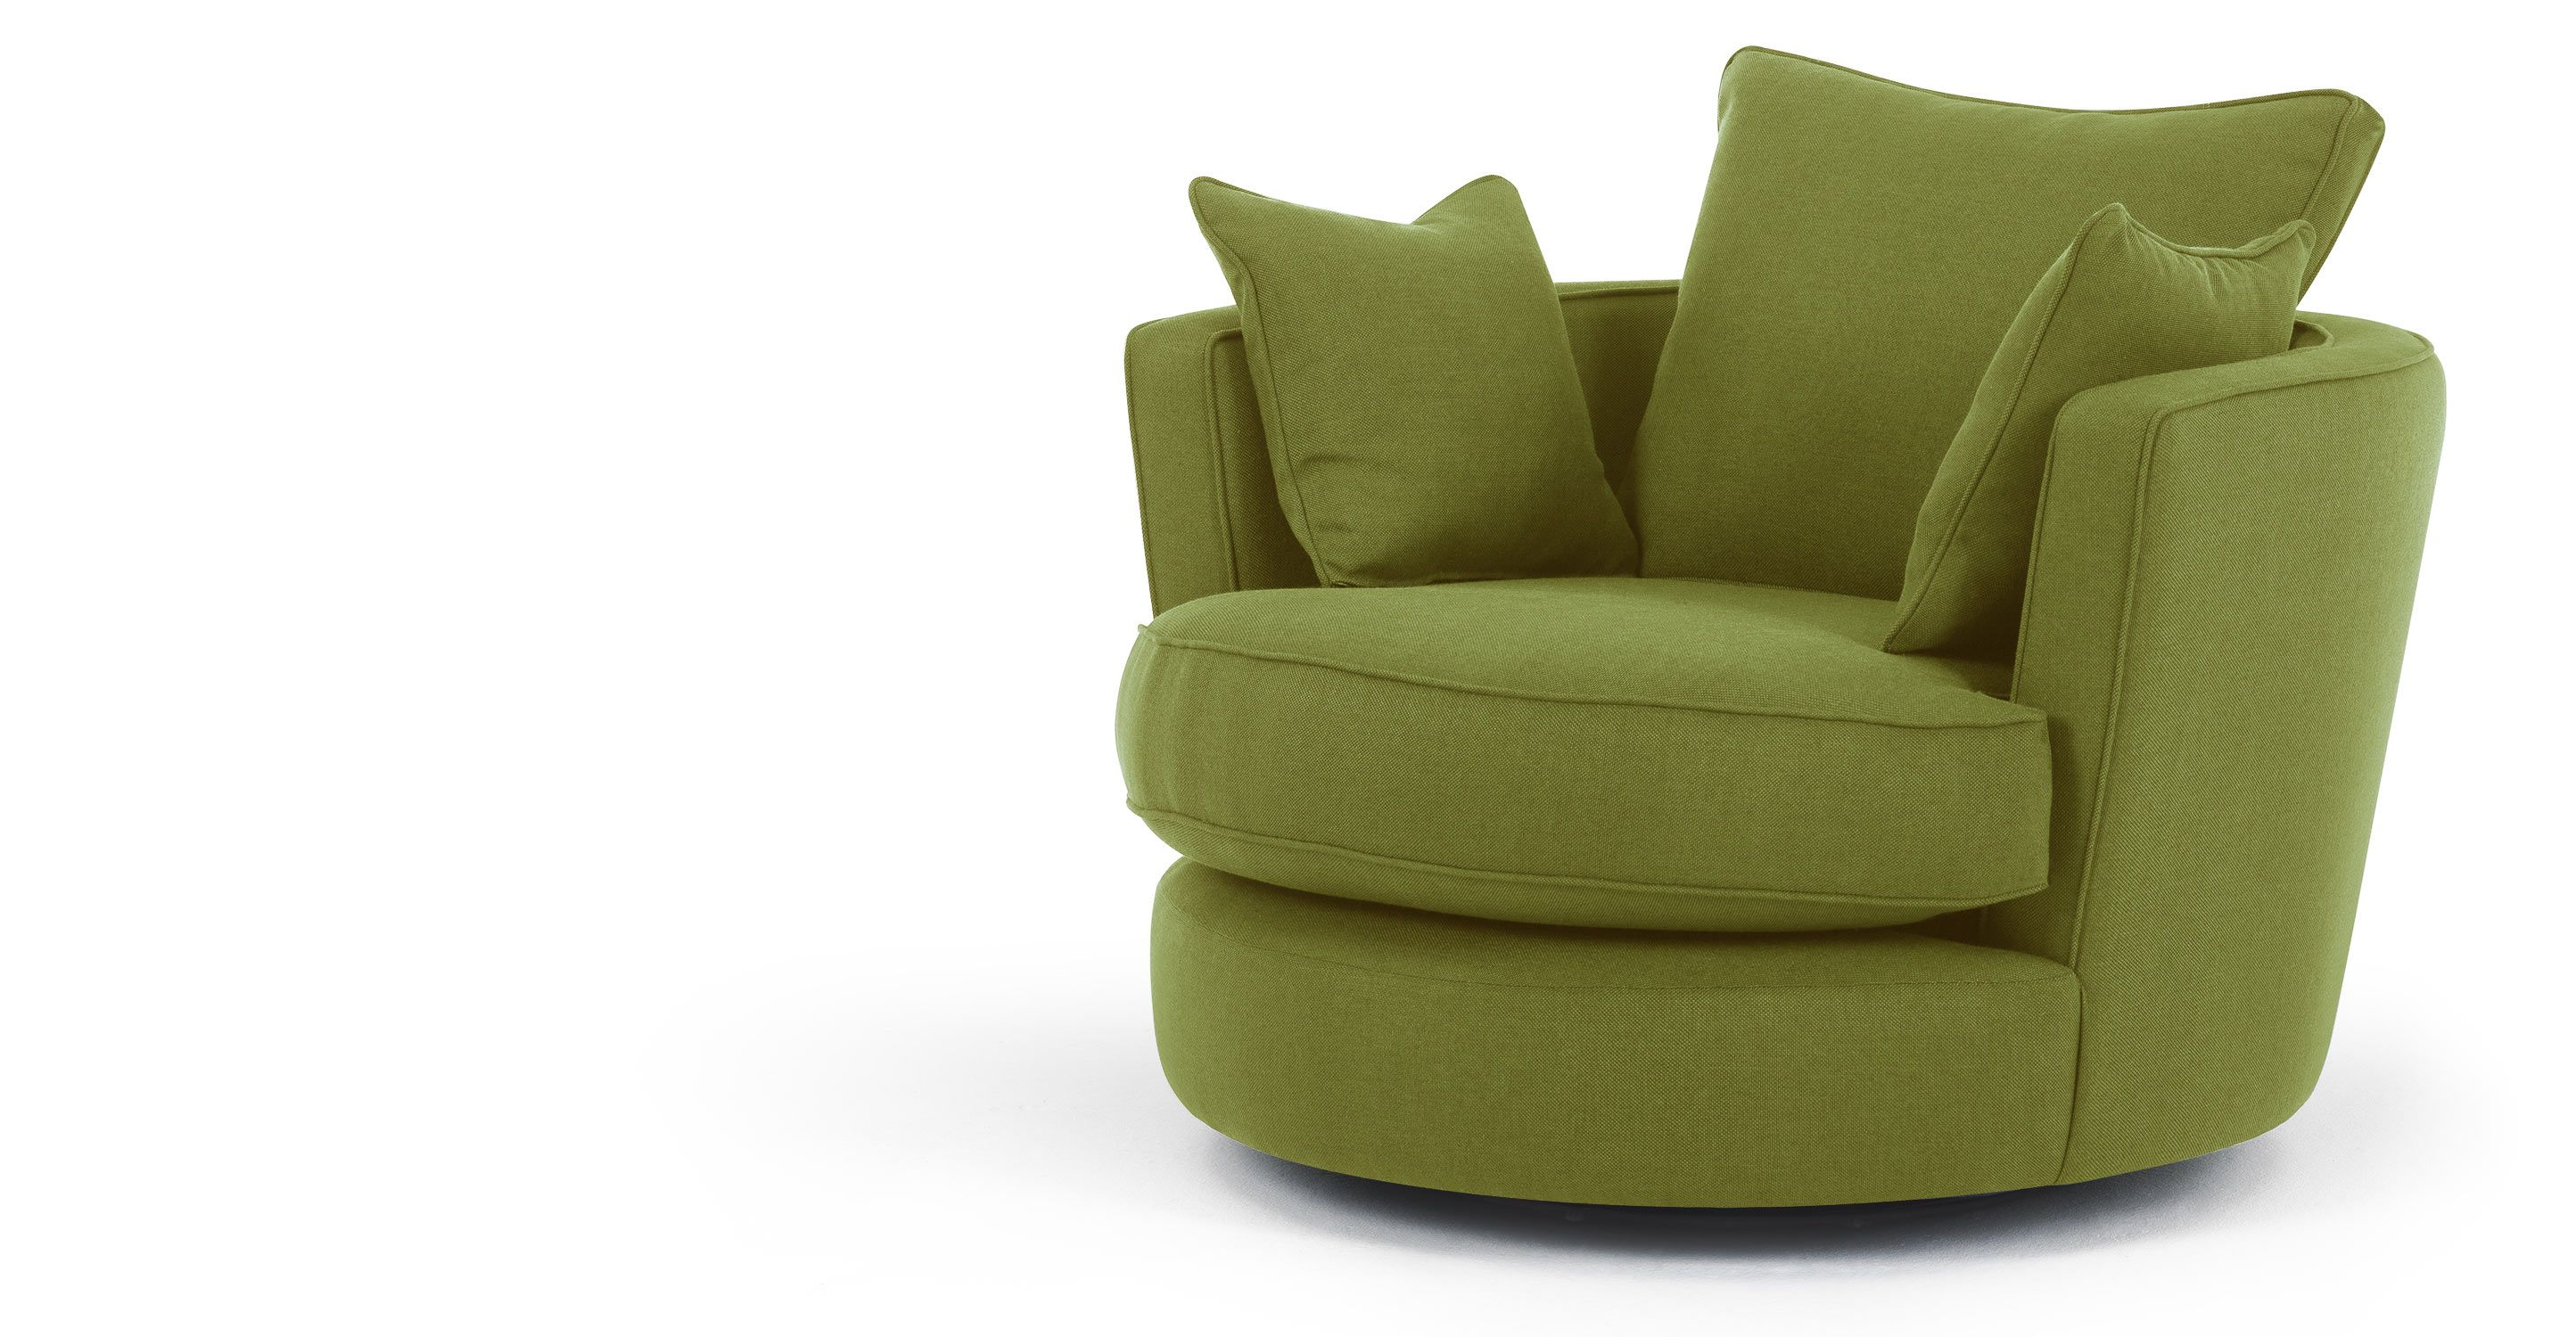 Admirable Leon Swivel Loveseat In Basil Green Made Com Furniture Gmtry Best Dining Table And Chair Ideas Images Gmtryco